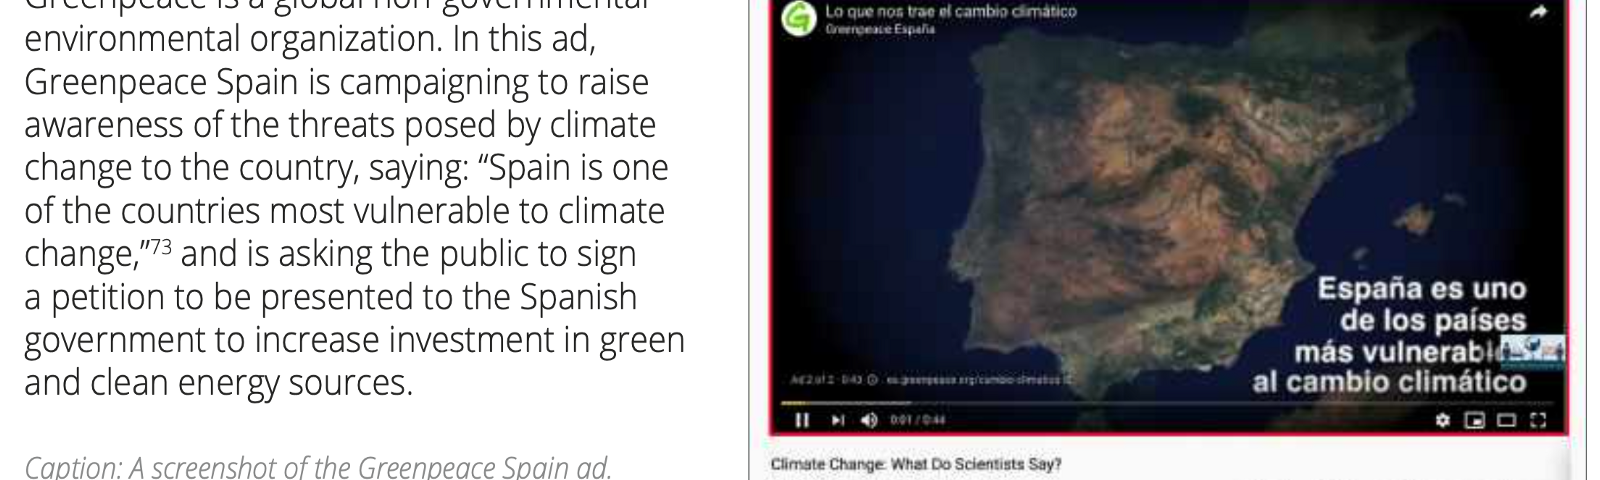 """Screenshot of a YouTube video titled """"Climate Change What Do Scientists Say?"""" playing an ad by Greenpeace Spain"""